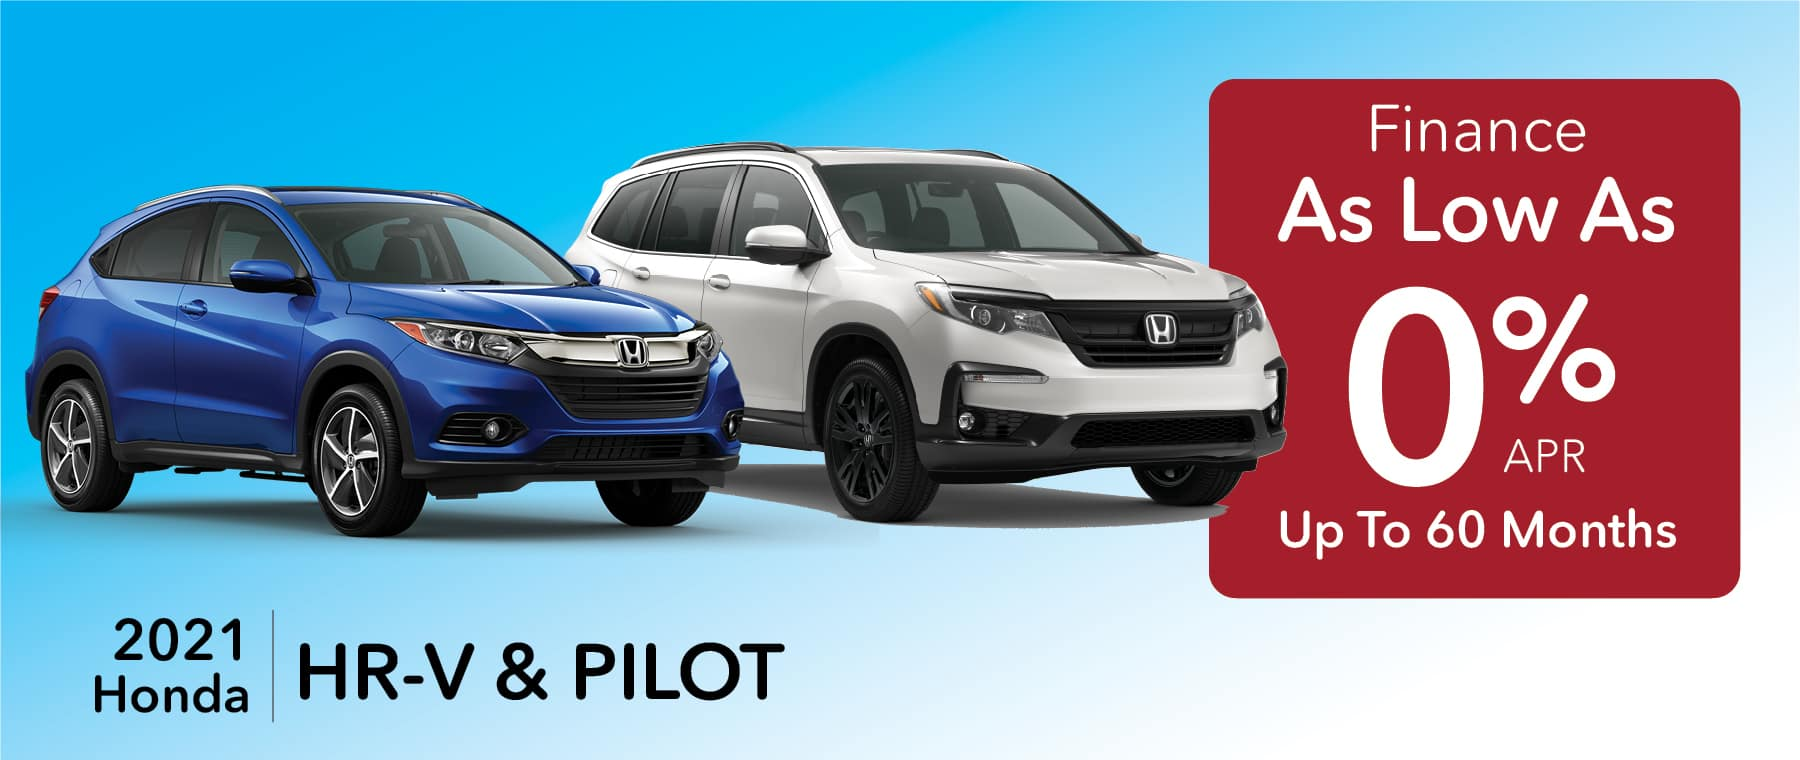 0% APR for up to 60 months on HR-V & Pilot